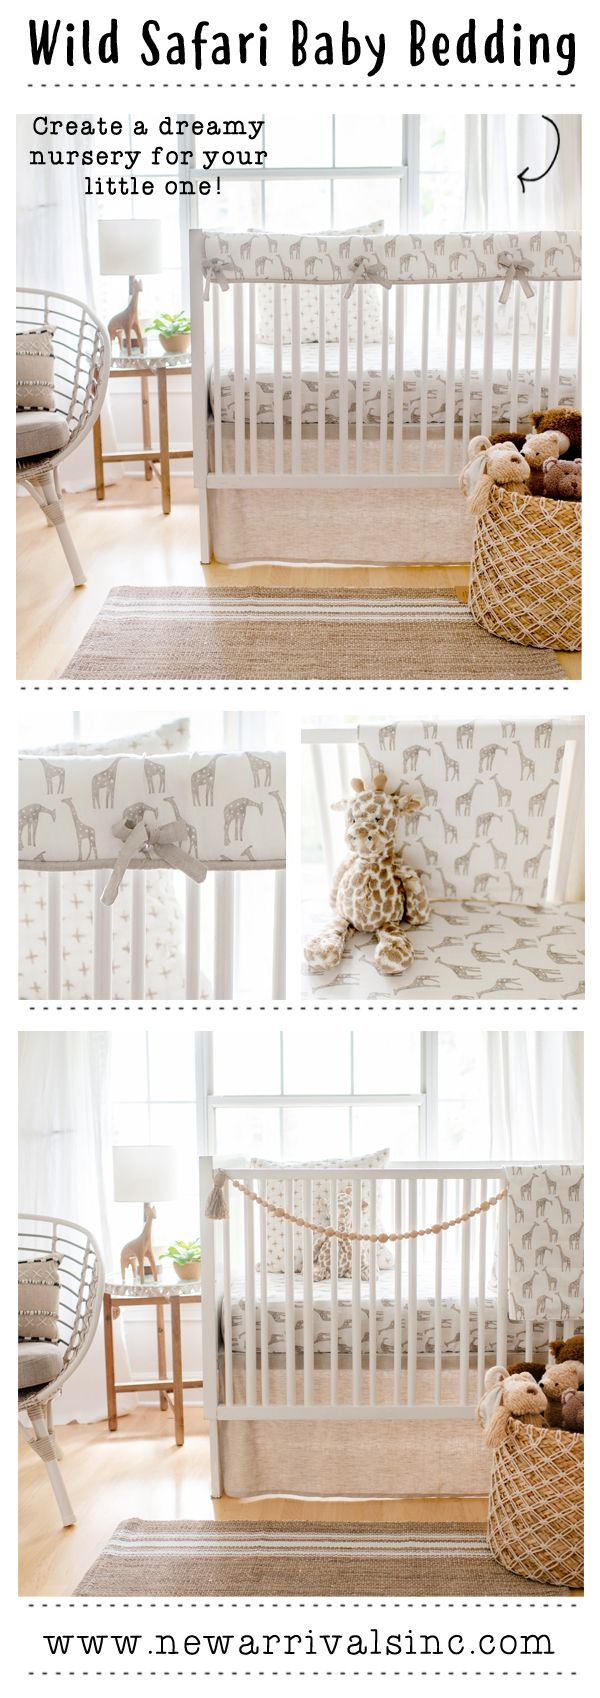 Wild Safari Baby Bedding Featuring A Whimsical Giraffe Pattern In Neutral Colors From New Arrivals I Safari Nursery Bedding Giraffe Nursery Bedding Baby Bed